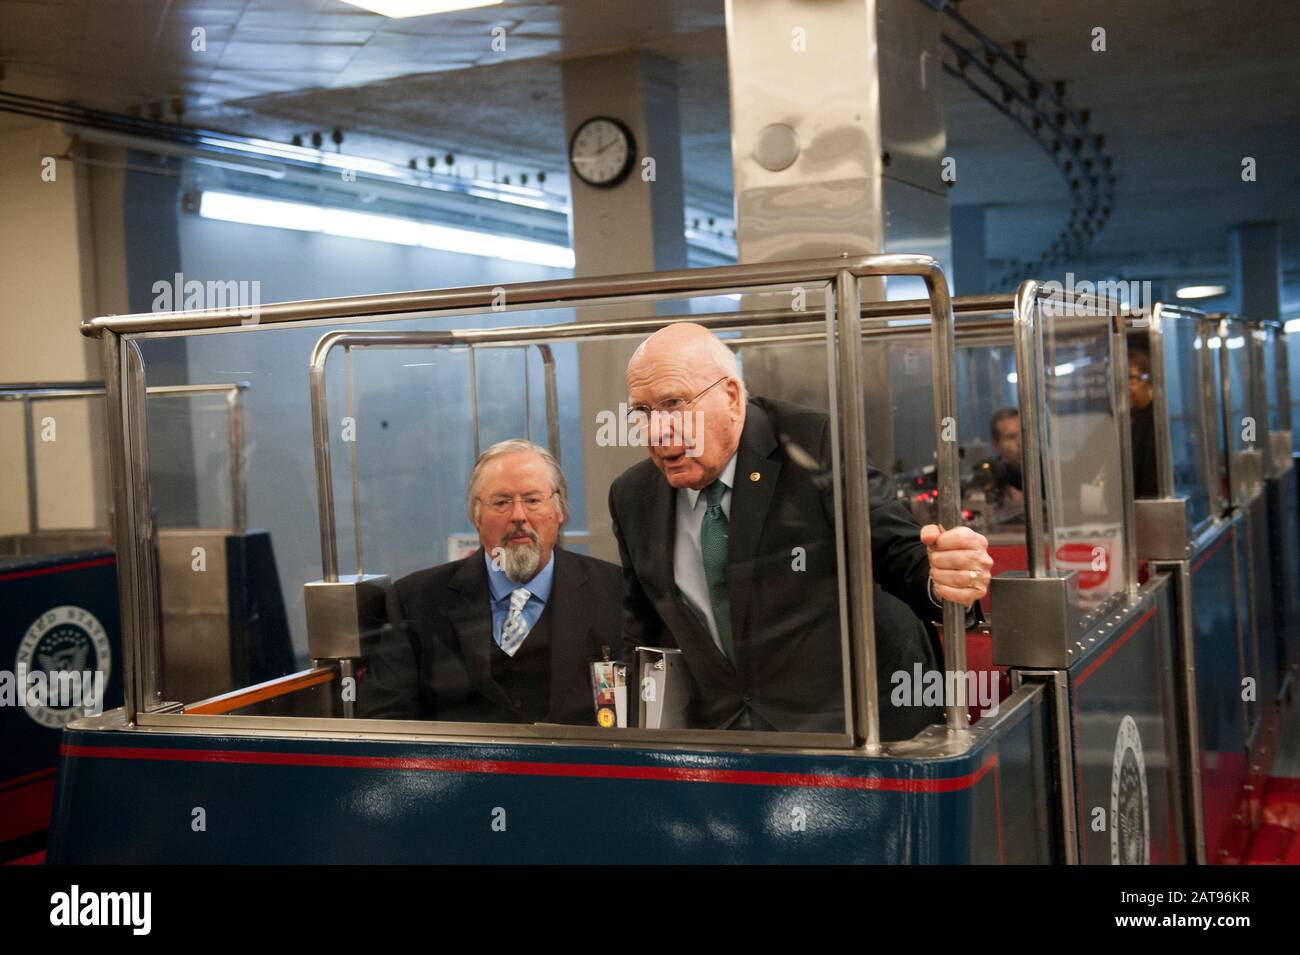 Washington, Dc, United States. 31st Jan, 2020. Senator Patrick Leahy (D-VT) arrives in the Senate subway in the basement of the U.S. Capitol, prior to the Senate impeachment trial of President Donald Trump, in Washington, DC, Friday, January 31, 2020. (Photo by Rod Lamkey Jr./SIPA USA) Credit: Sipa USA/Alamy Live News Stock Photo